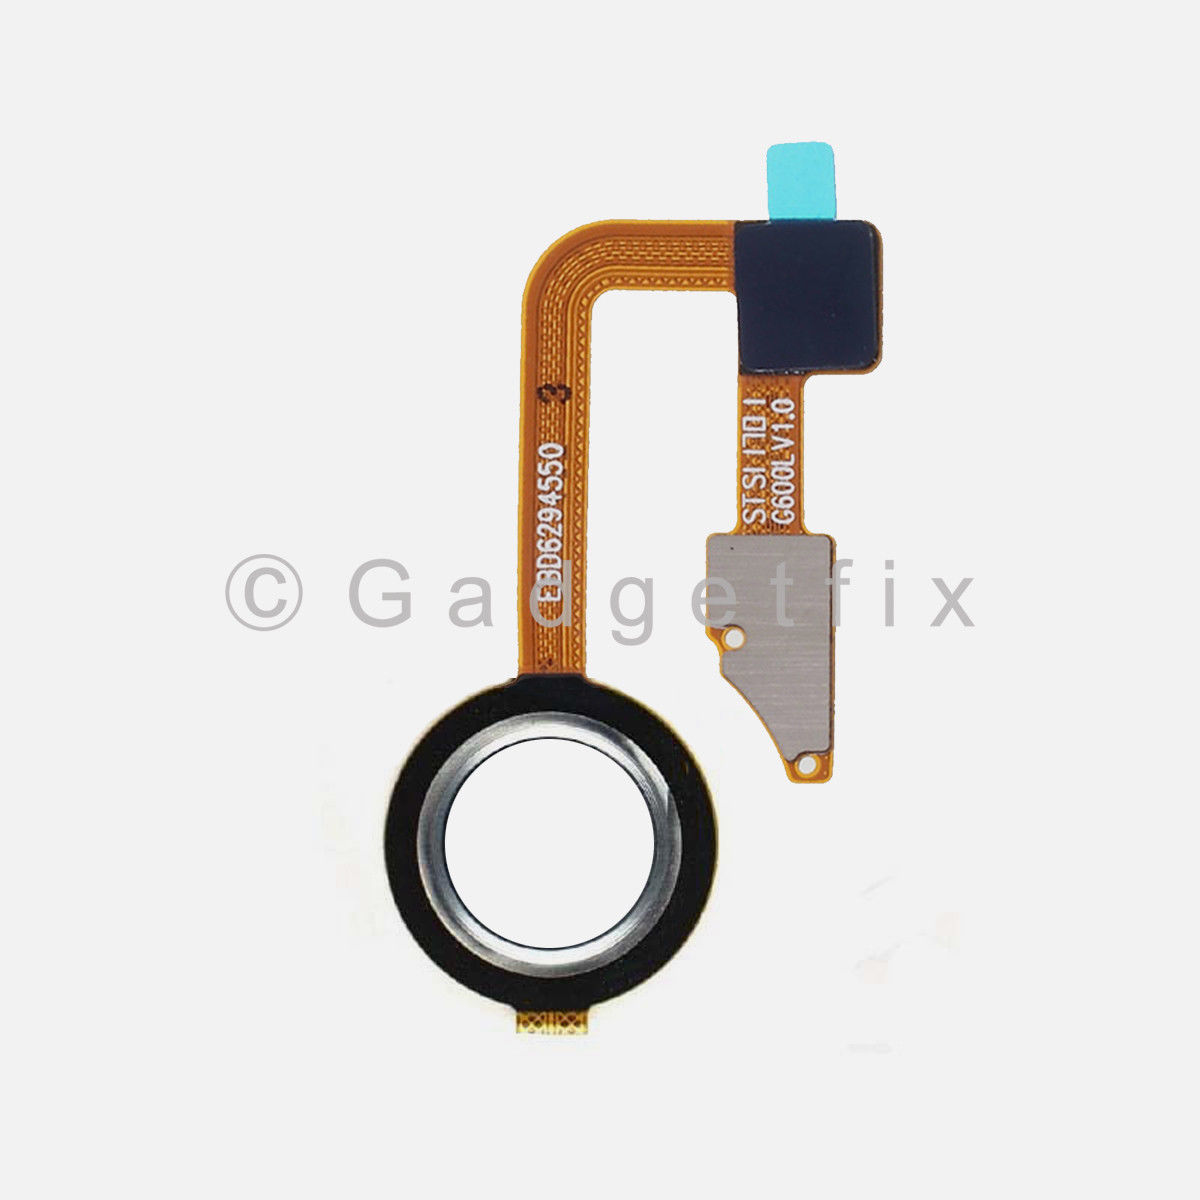 White LG G6 H870 H871 H872 Power Home Button Fingerprint Sensor Flex Cable